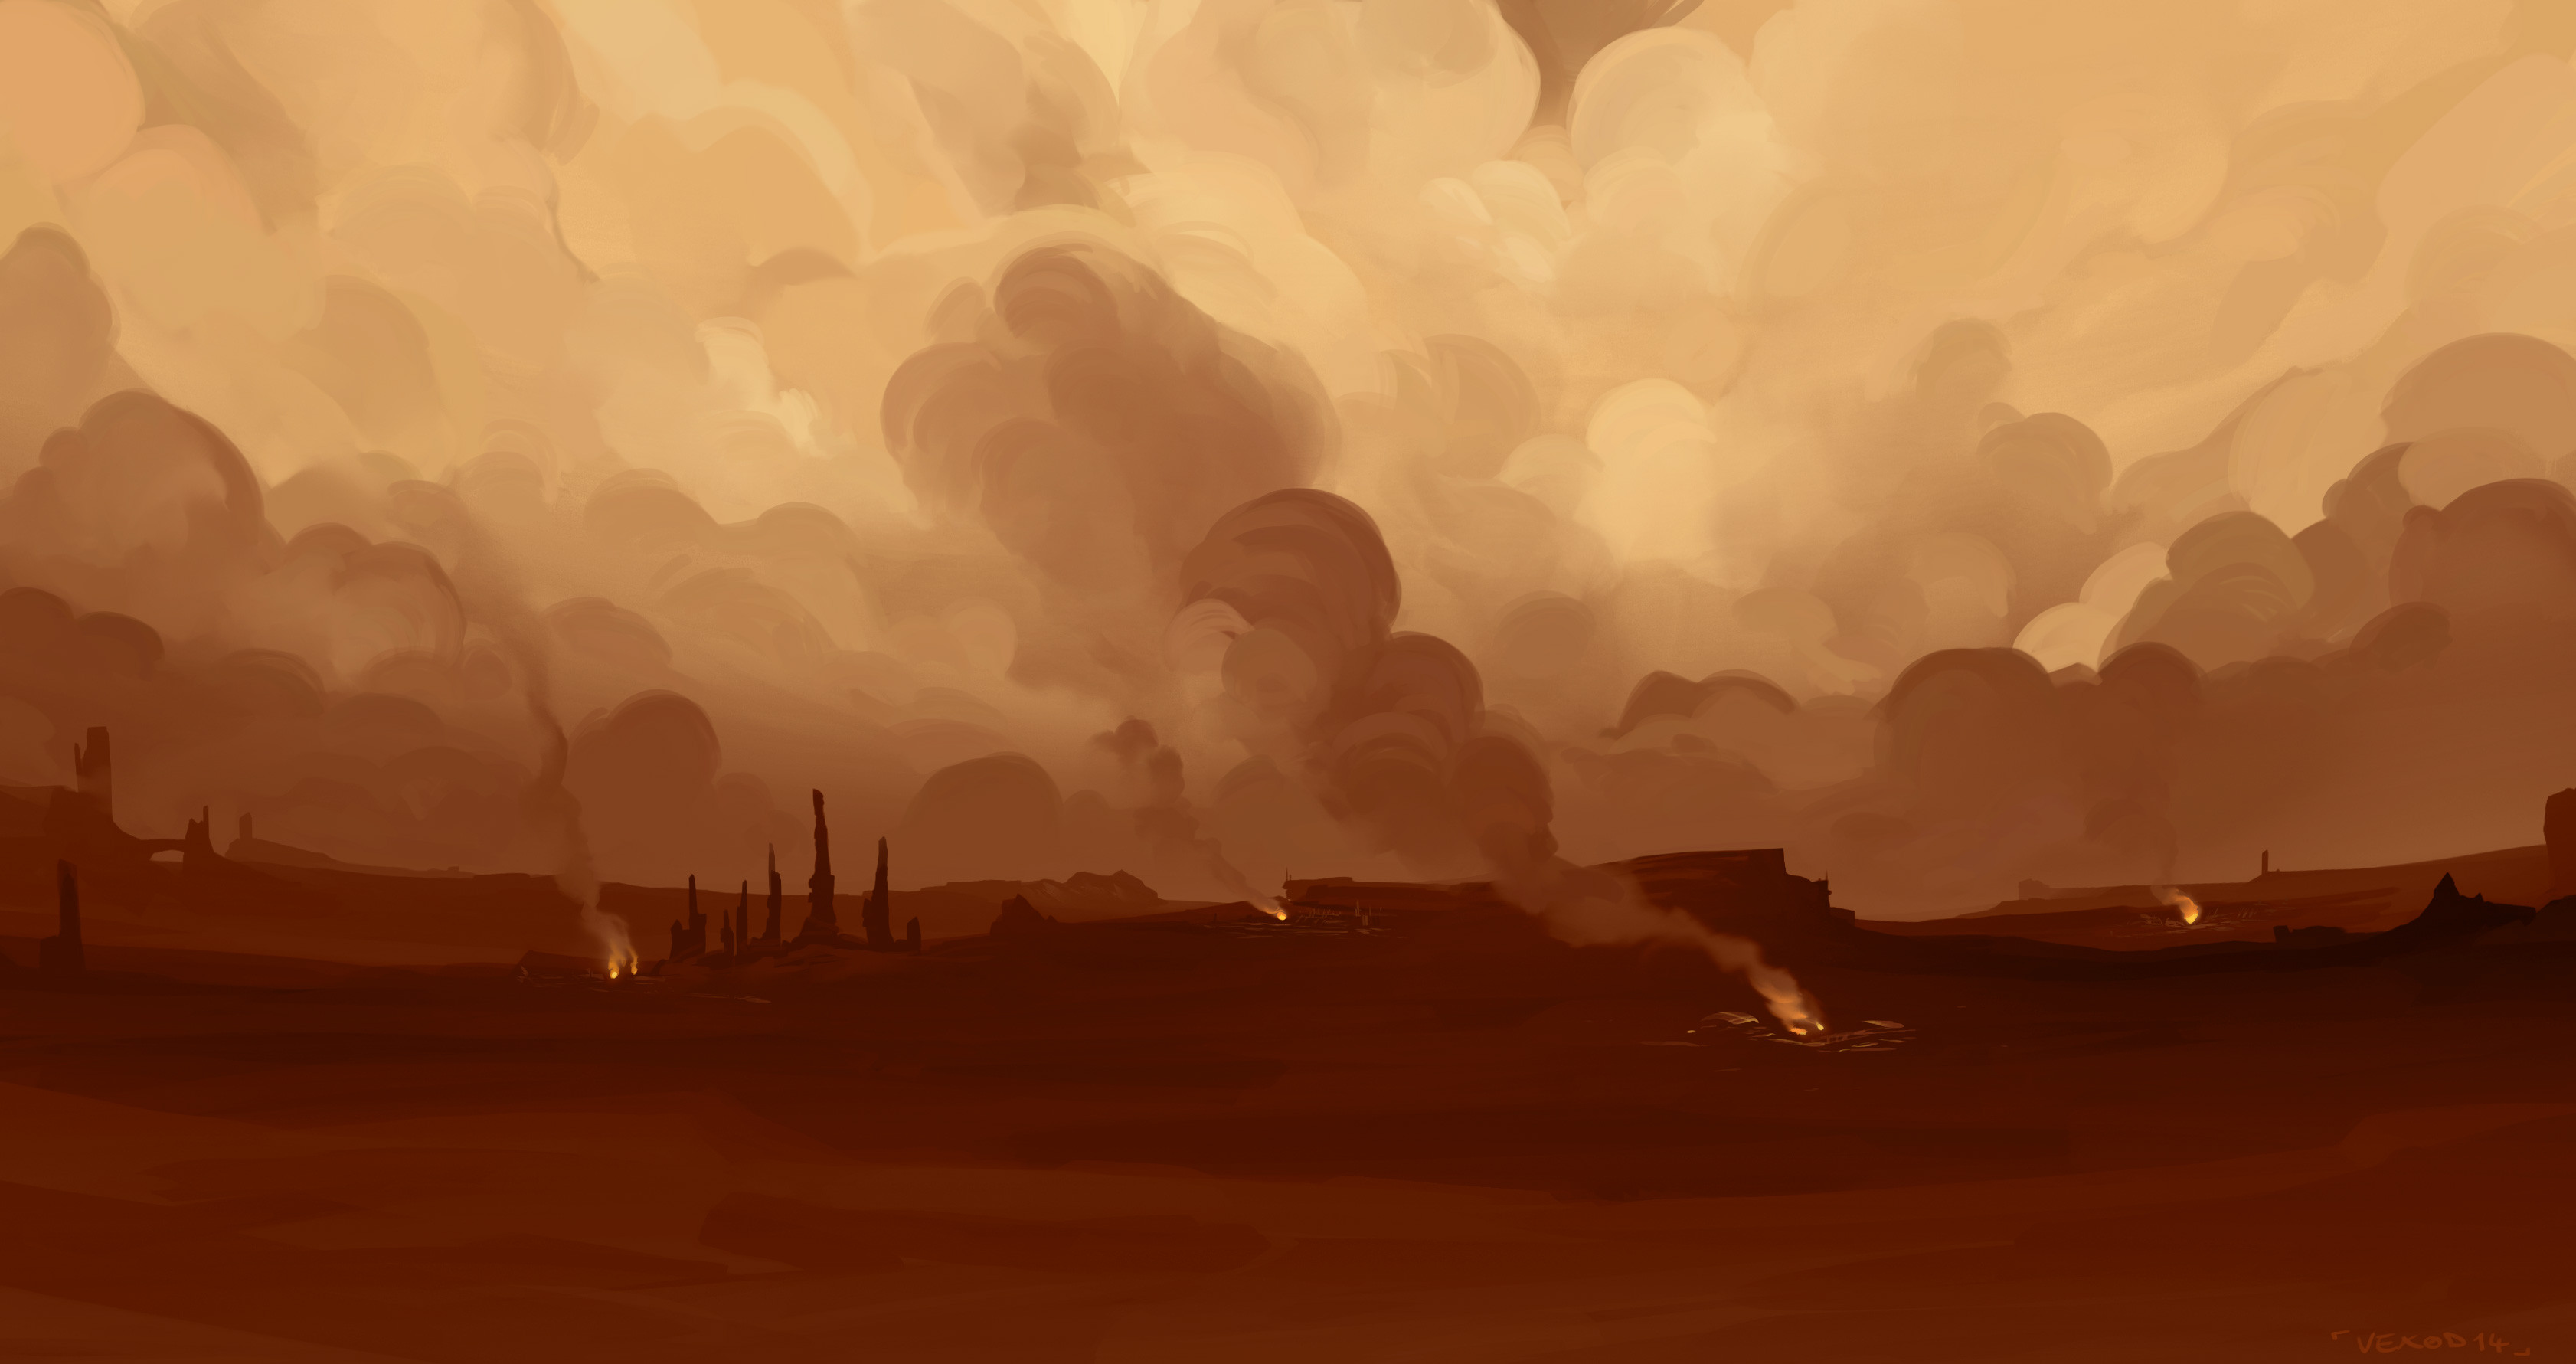 Geonosis environment background - Photoshop